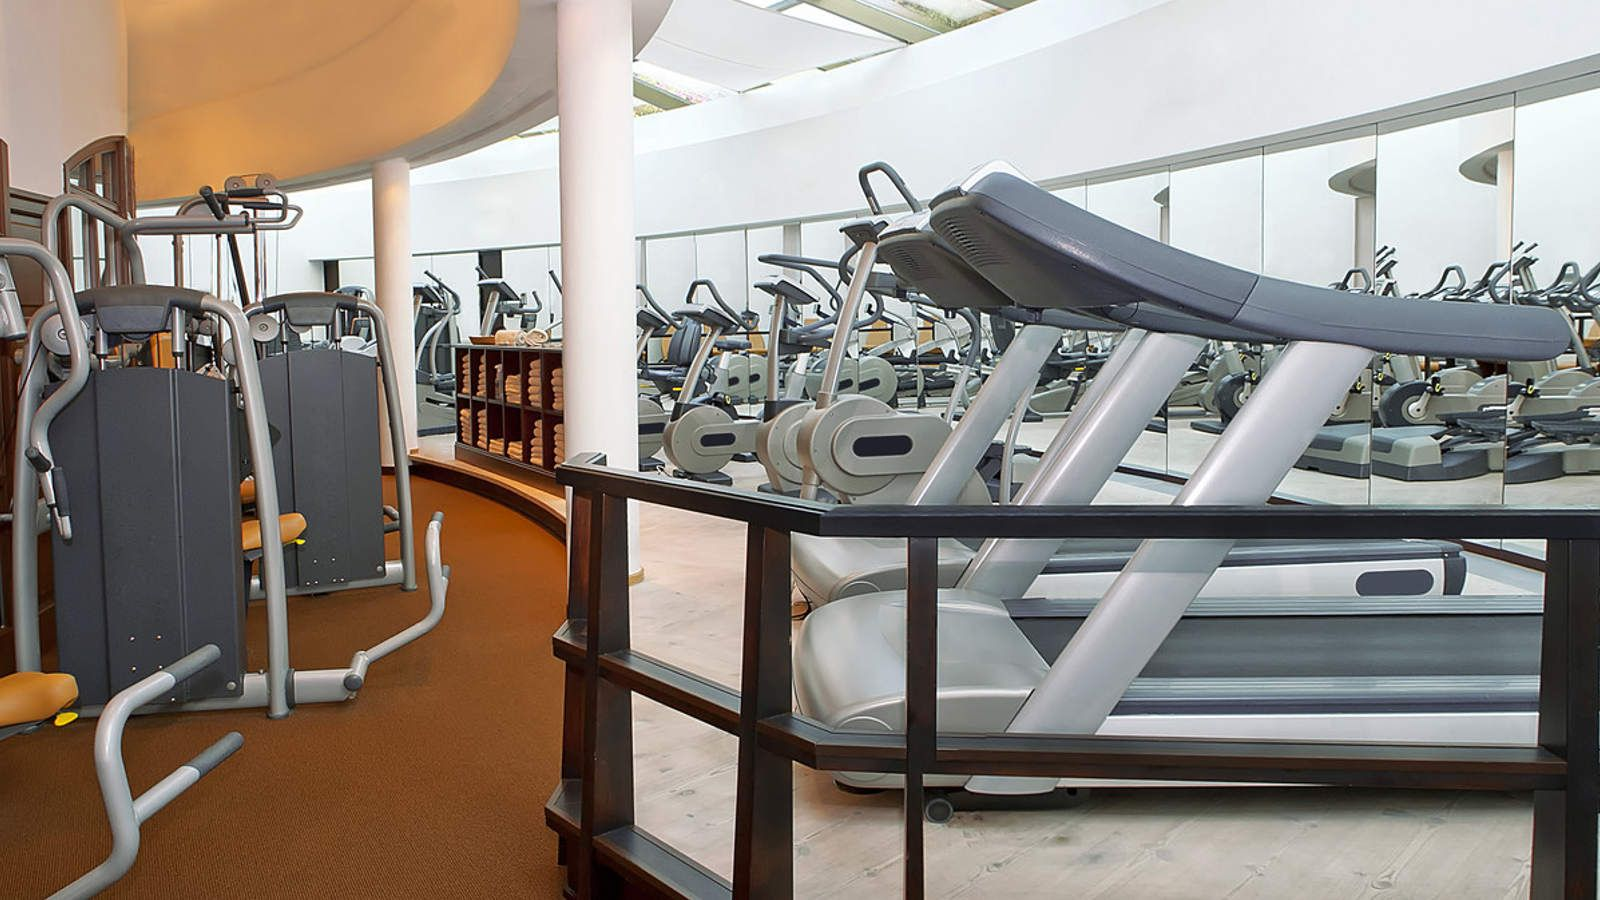 Gym equipments of The St. Regis Mardavall Mallorca Resort